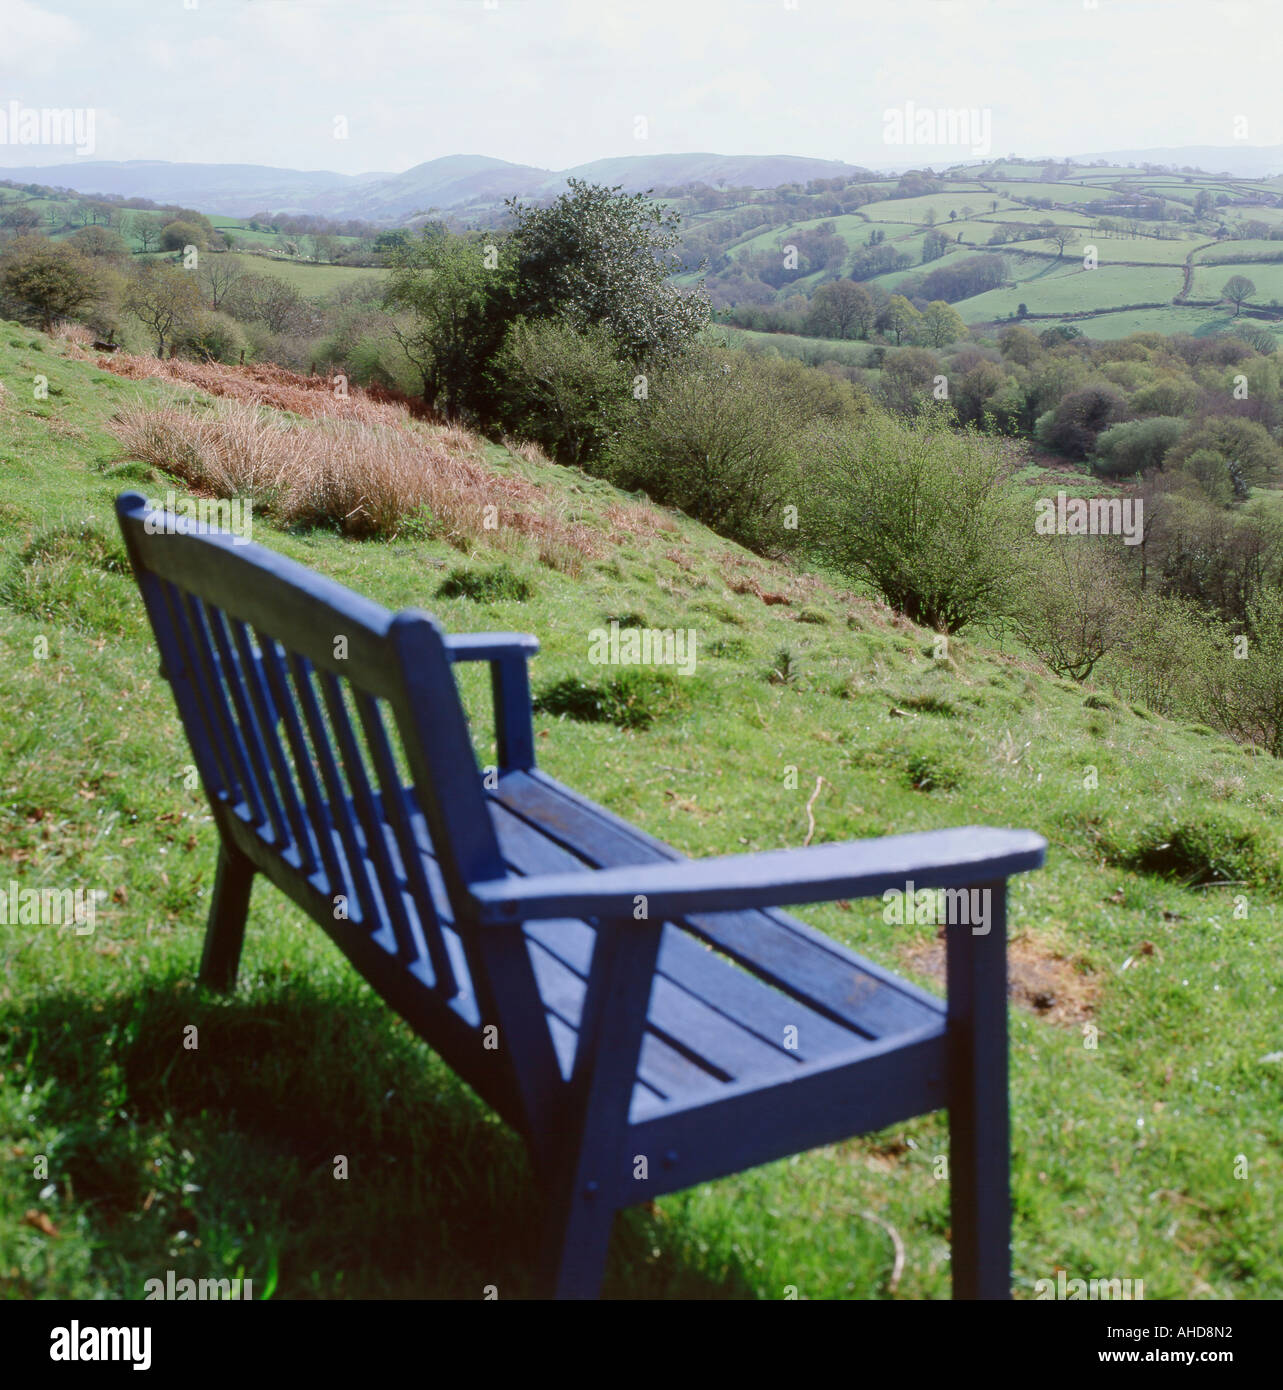 An blue garden bench overlooking the hills in the spring countryside landscape near Llandovery and Llanwrda of Carmarthenshire Wales UK  KATHY DEWITT - Stock Image